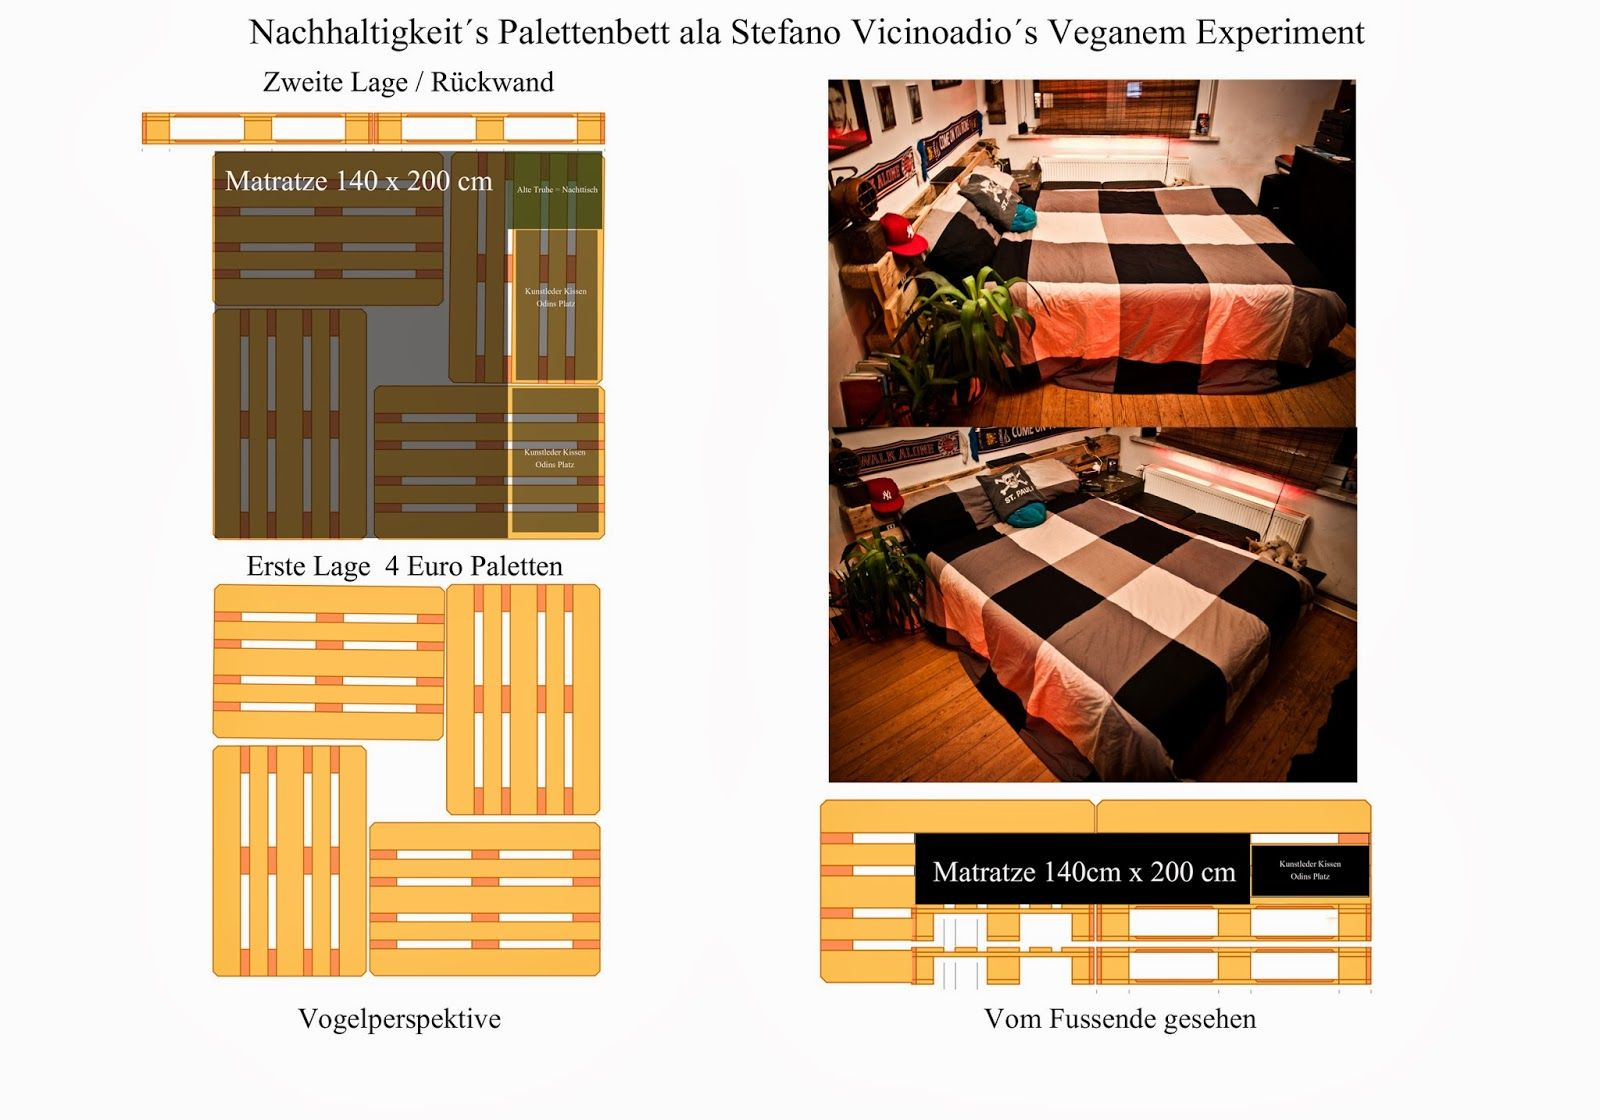 mein veganes experiment thema nachhaltigkeit mein beitrag. Black Bedroom Furniture Sets. Home Design Ideas